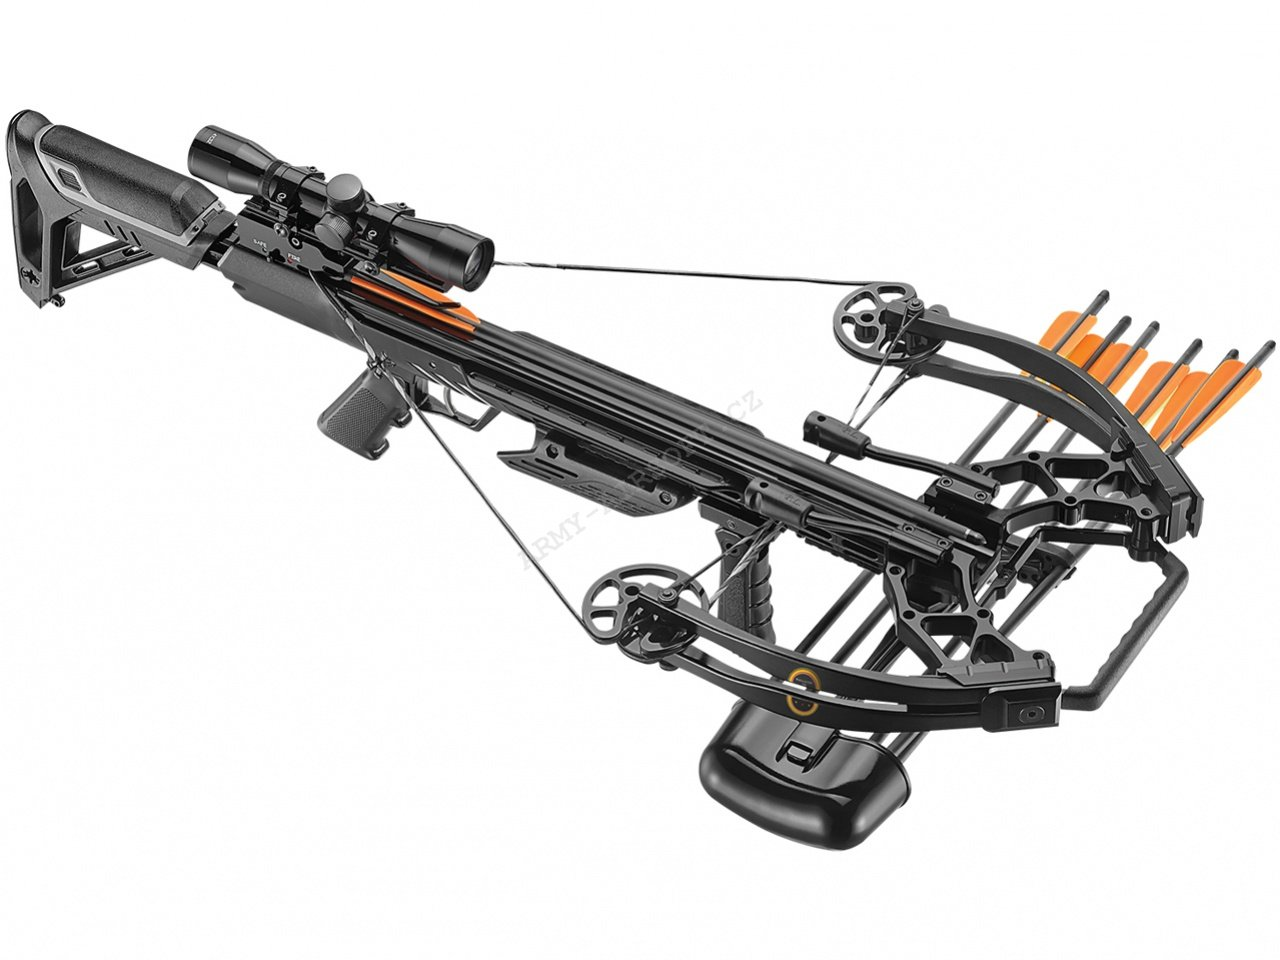 Kuše Beast Hunter Accelerator 410+ 185lb black - Beast Hunter